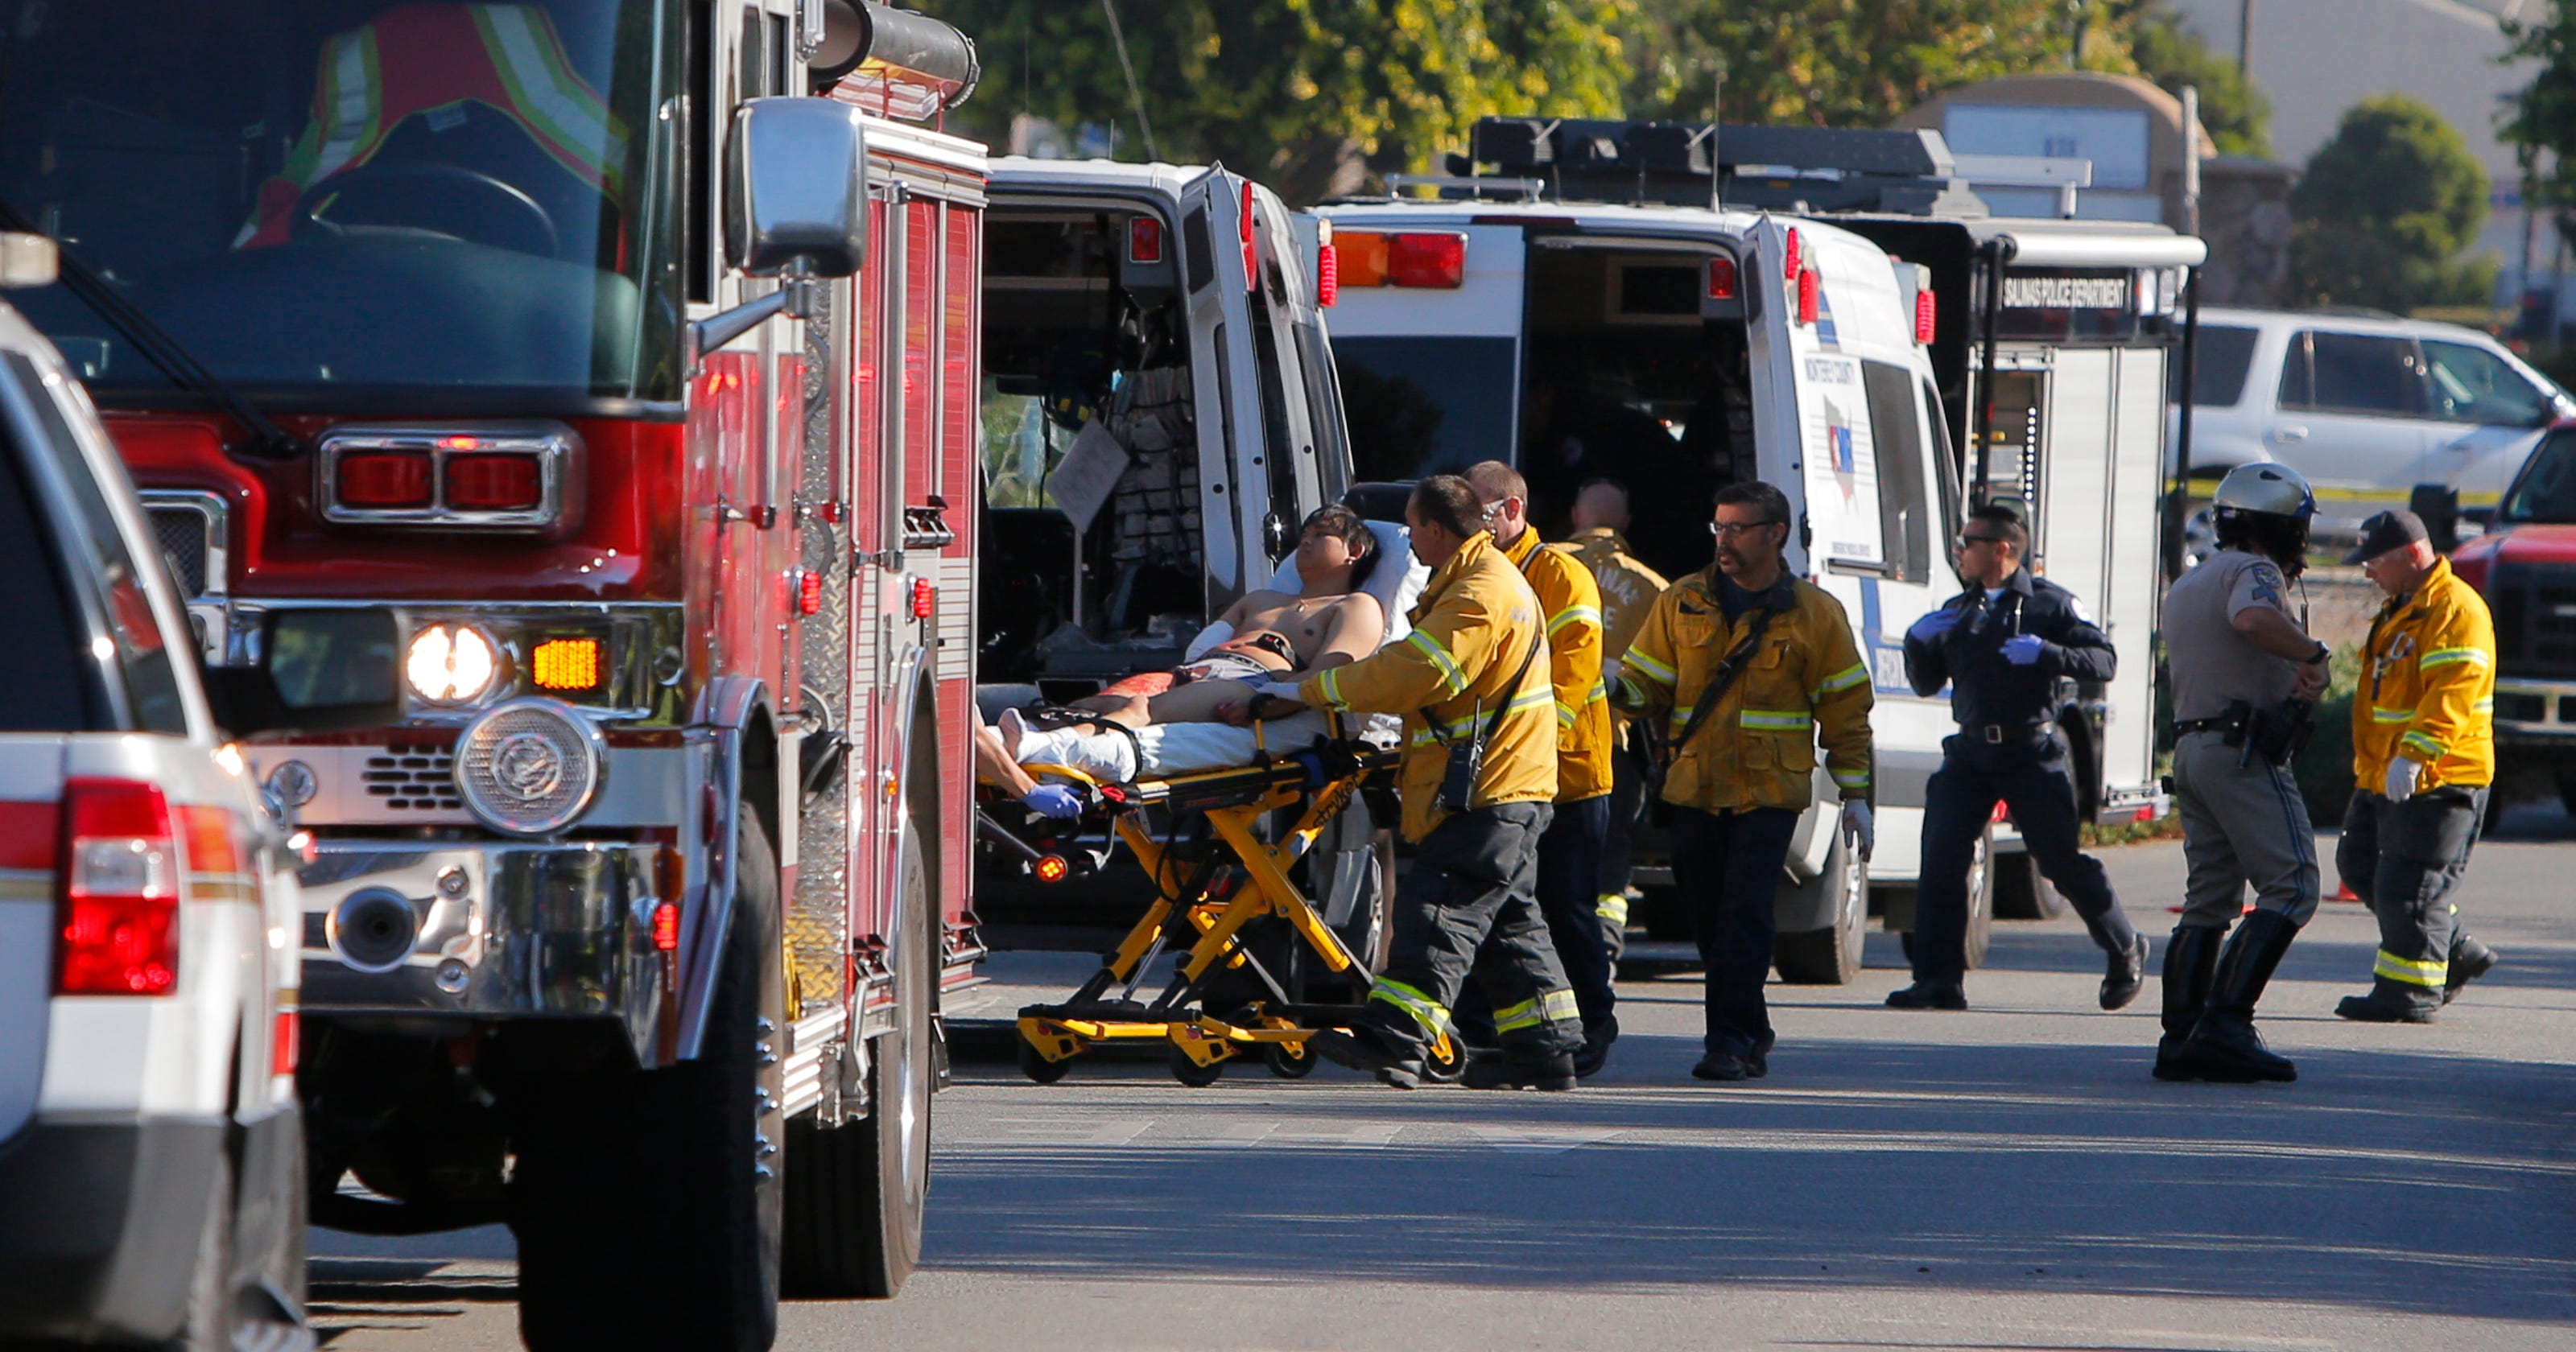 2 killed in California shooting near IRS office